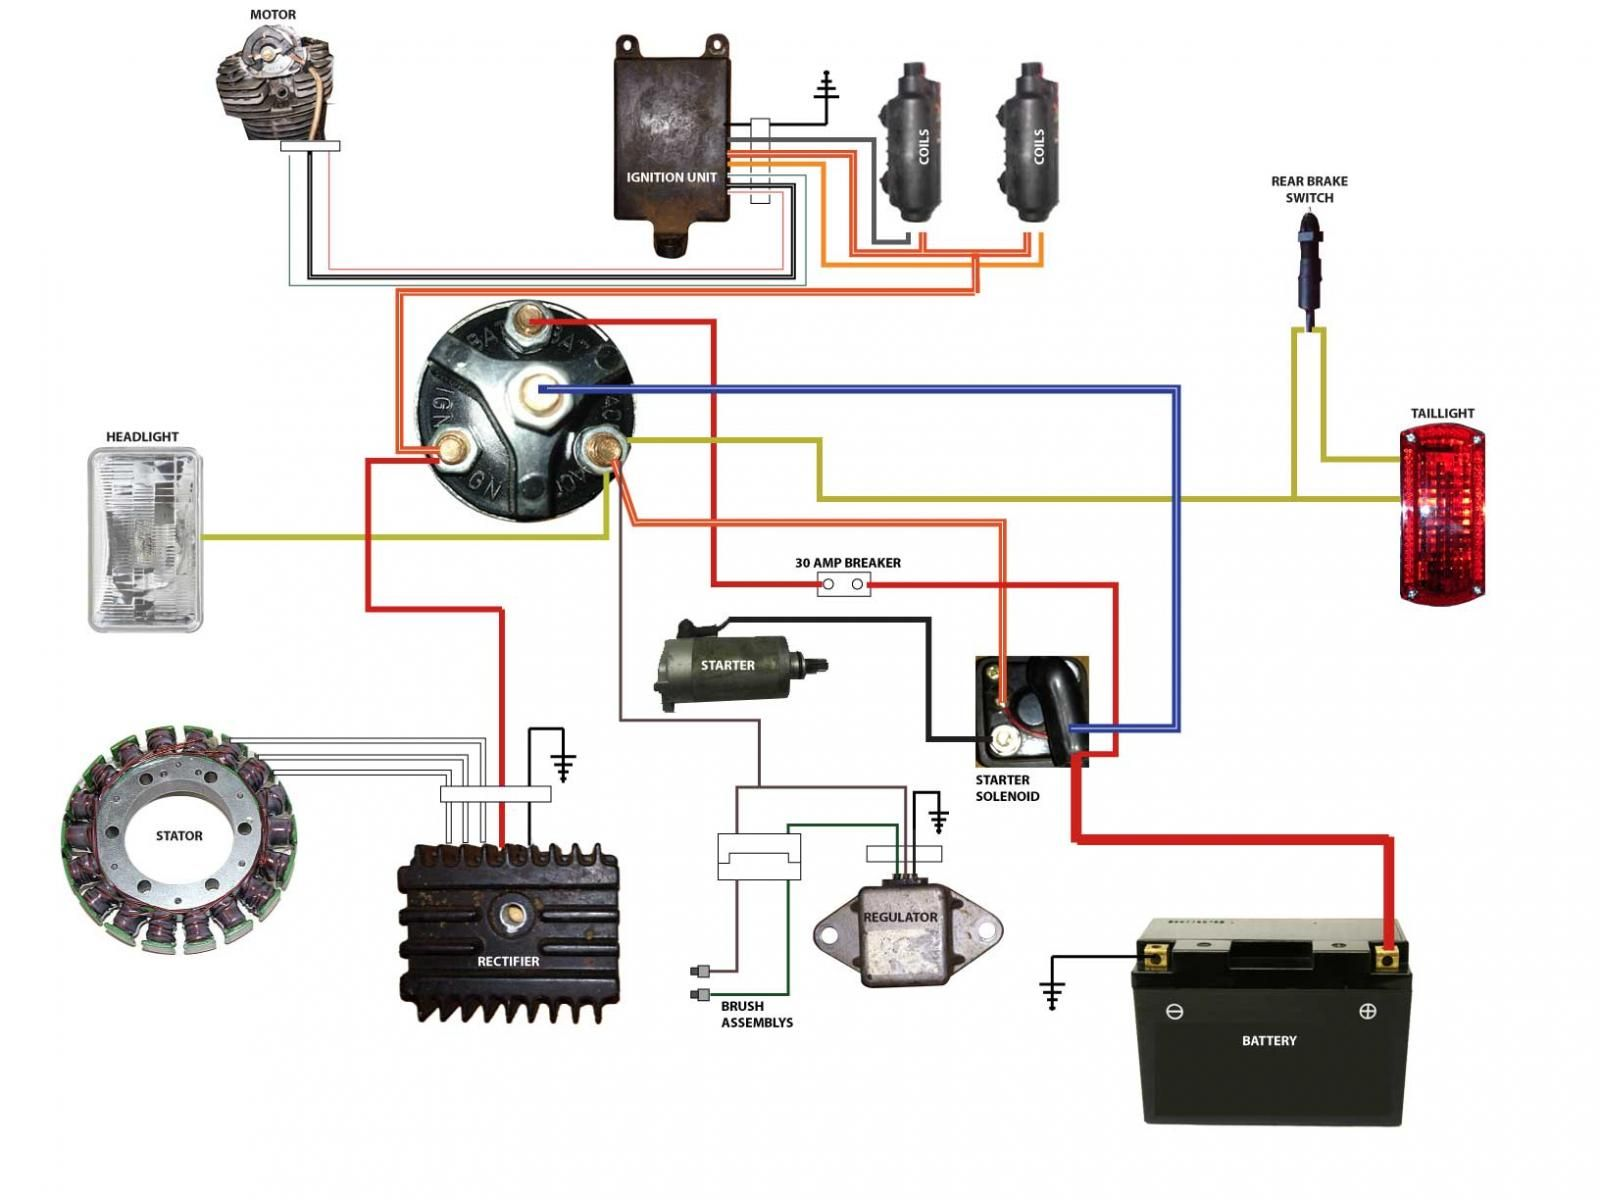 hight resolution of simplified wiring diagram for xs400 cafe projects to try yamaha v star 1100 wiring diagram